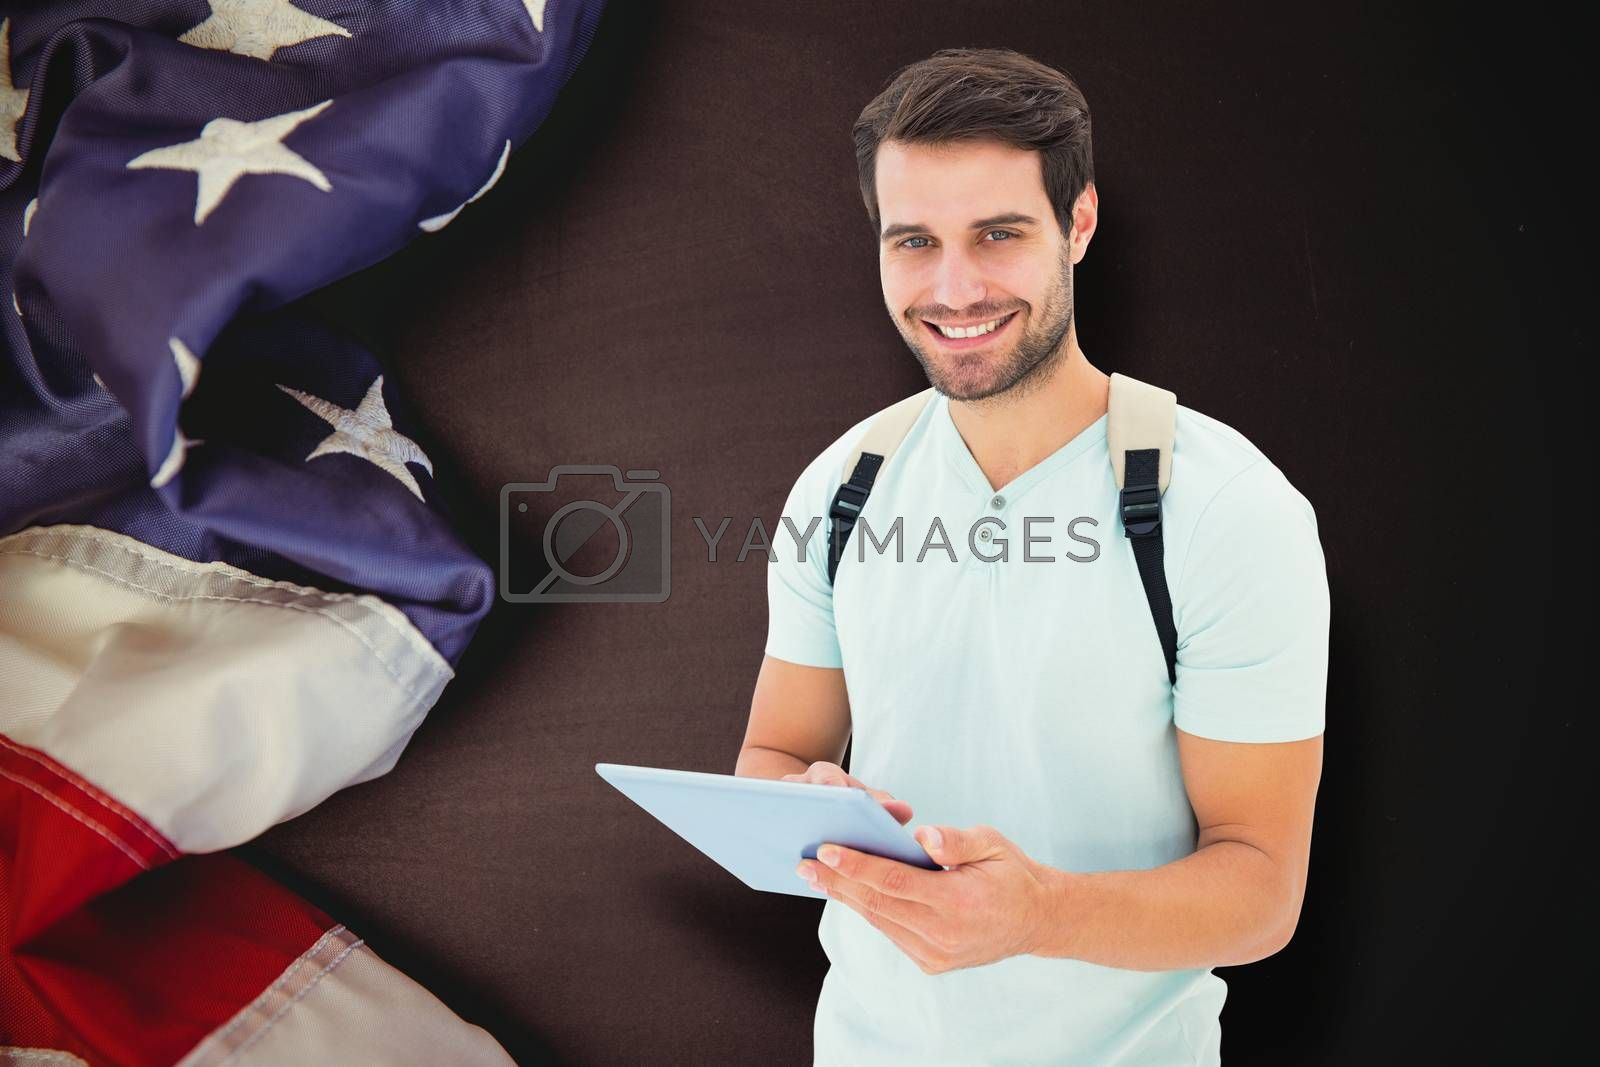 Student using tablet pc against american flag on chalkboard